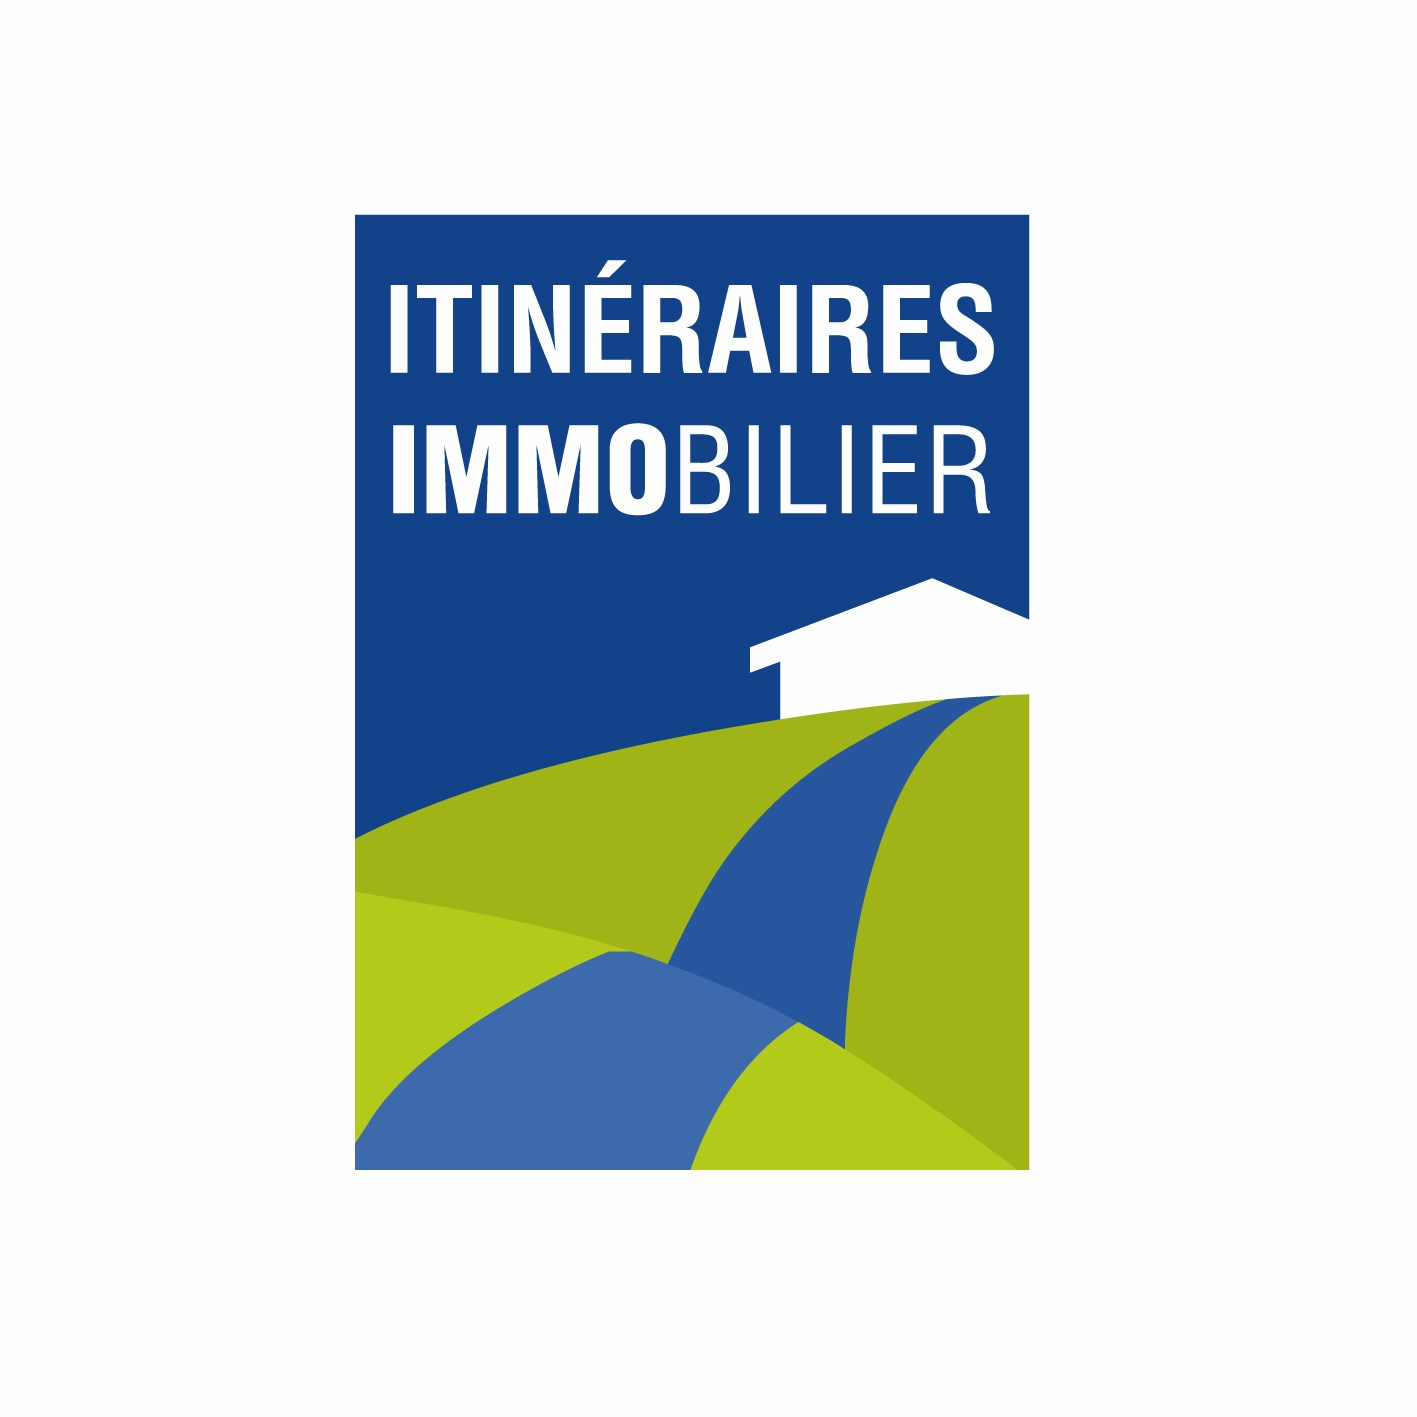 Itineraires immobilier agence immobili re brive la for Agence immobiliere brive